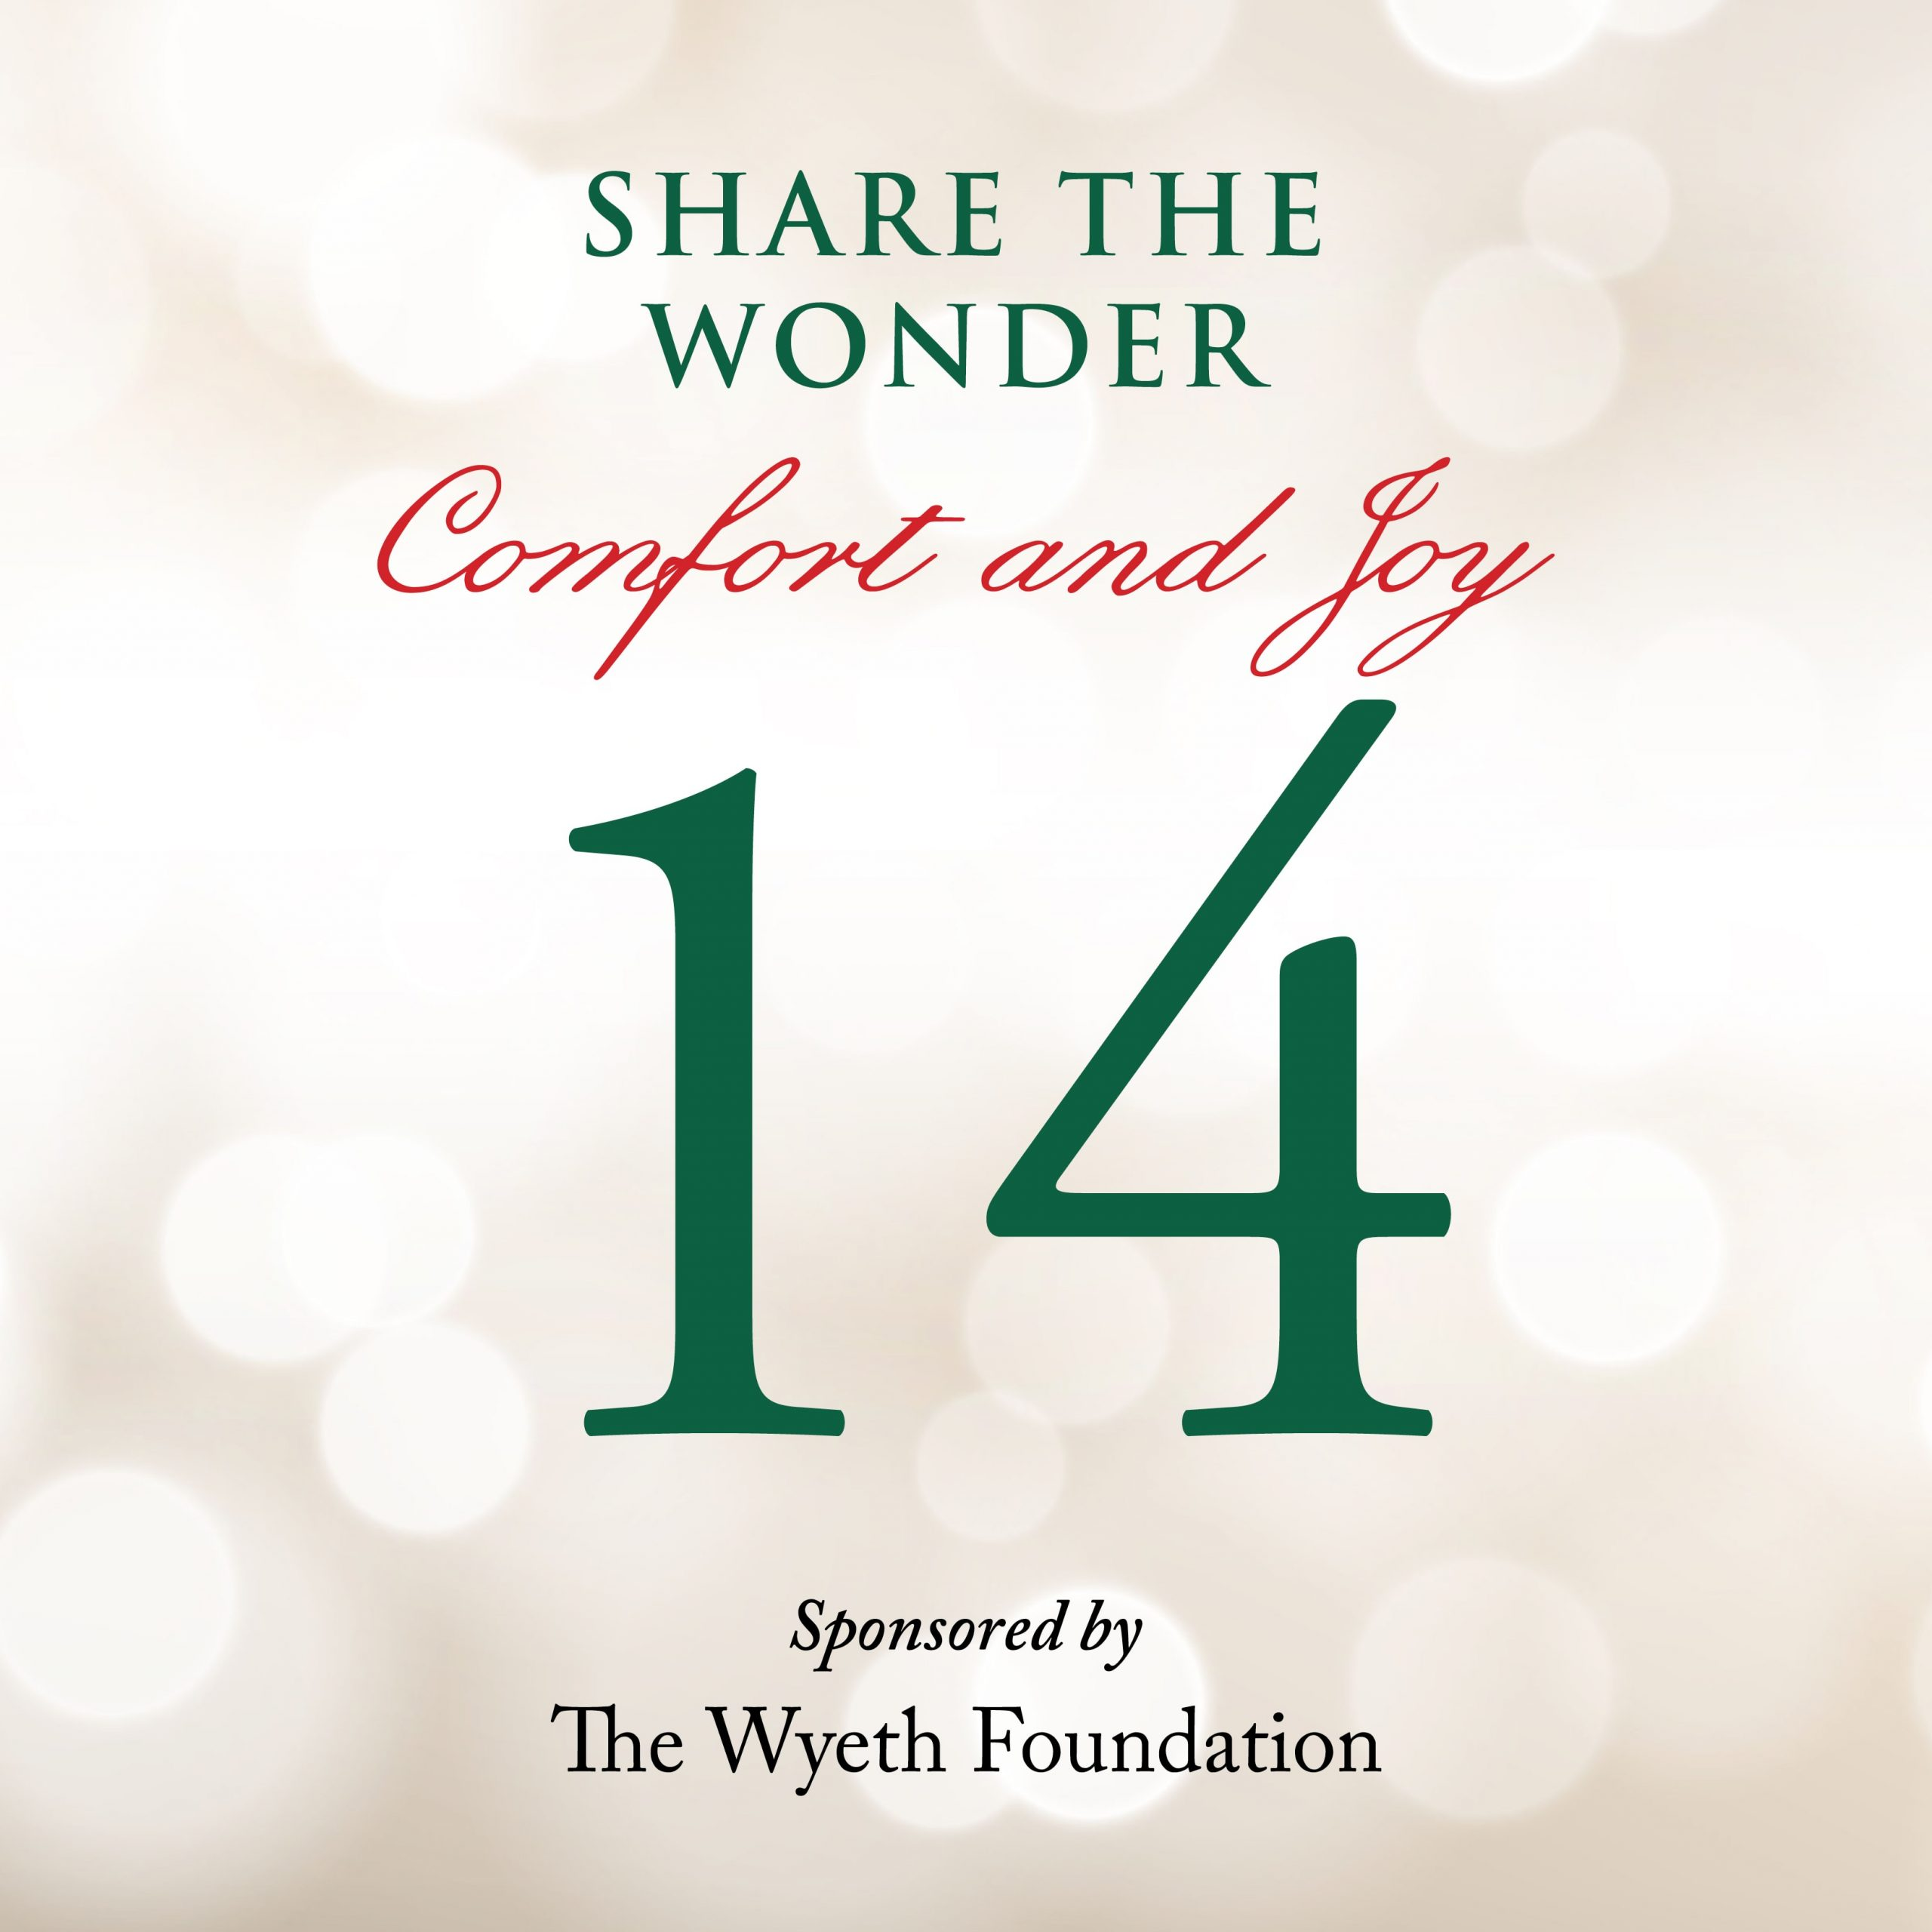 Day 14 of Share the Wonder: December 11